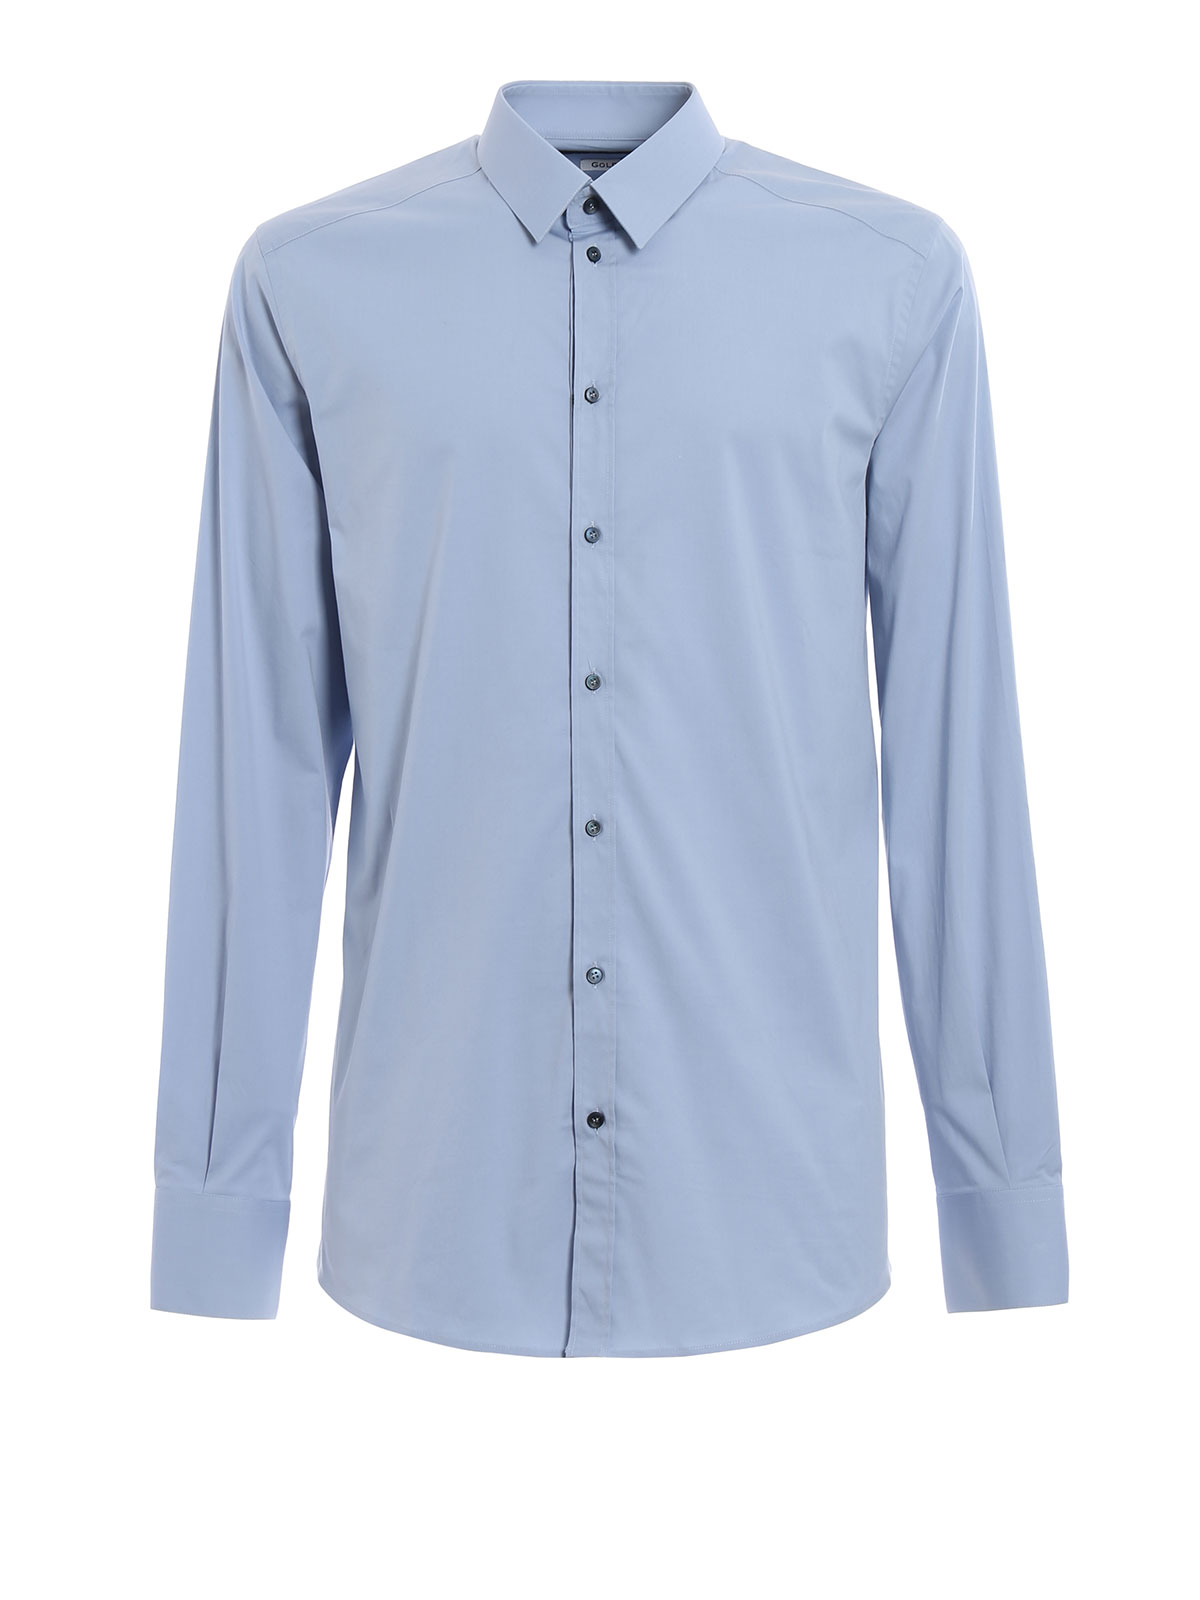 A concealed button placket and elongated point collar define modern style in this slim-fit HUGO shirt. Precise stretch offers a tailored coolzloadwok.ga | Slim Fit Stretch Cotton Dress Shirt Previous.